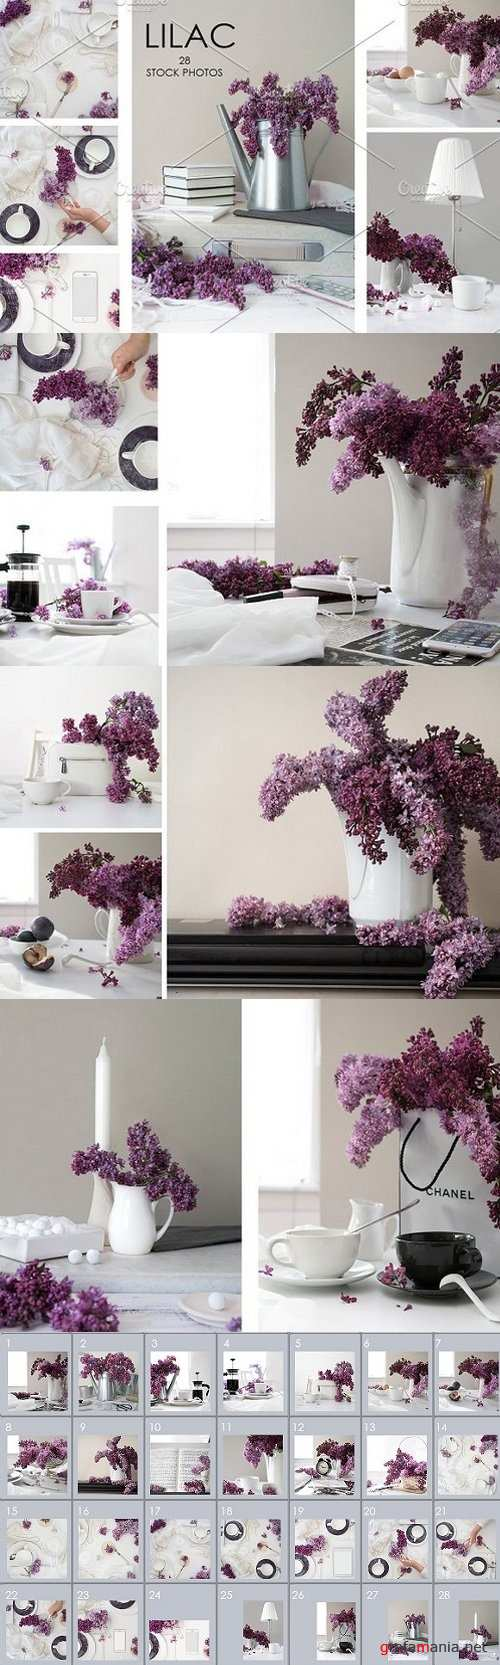 FLOWERS OF LILAC. 28 STOCK PHOTOS. 1636373